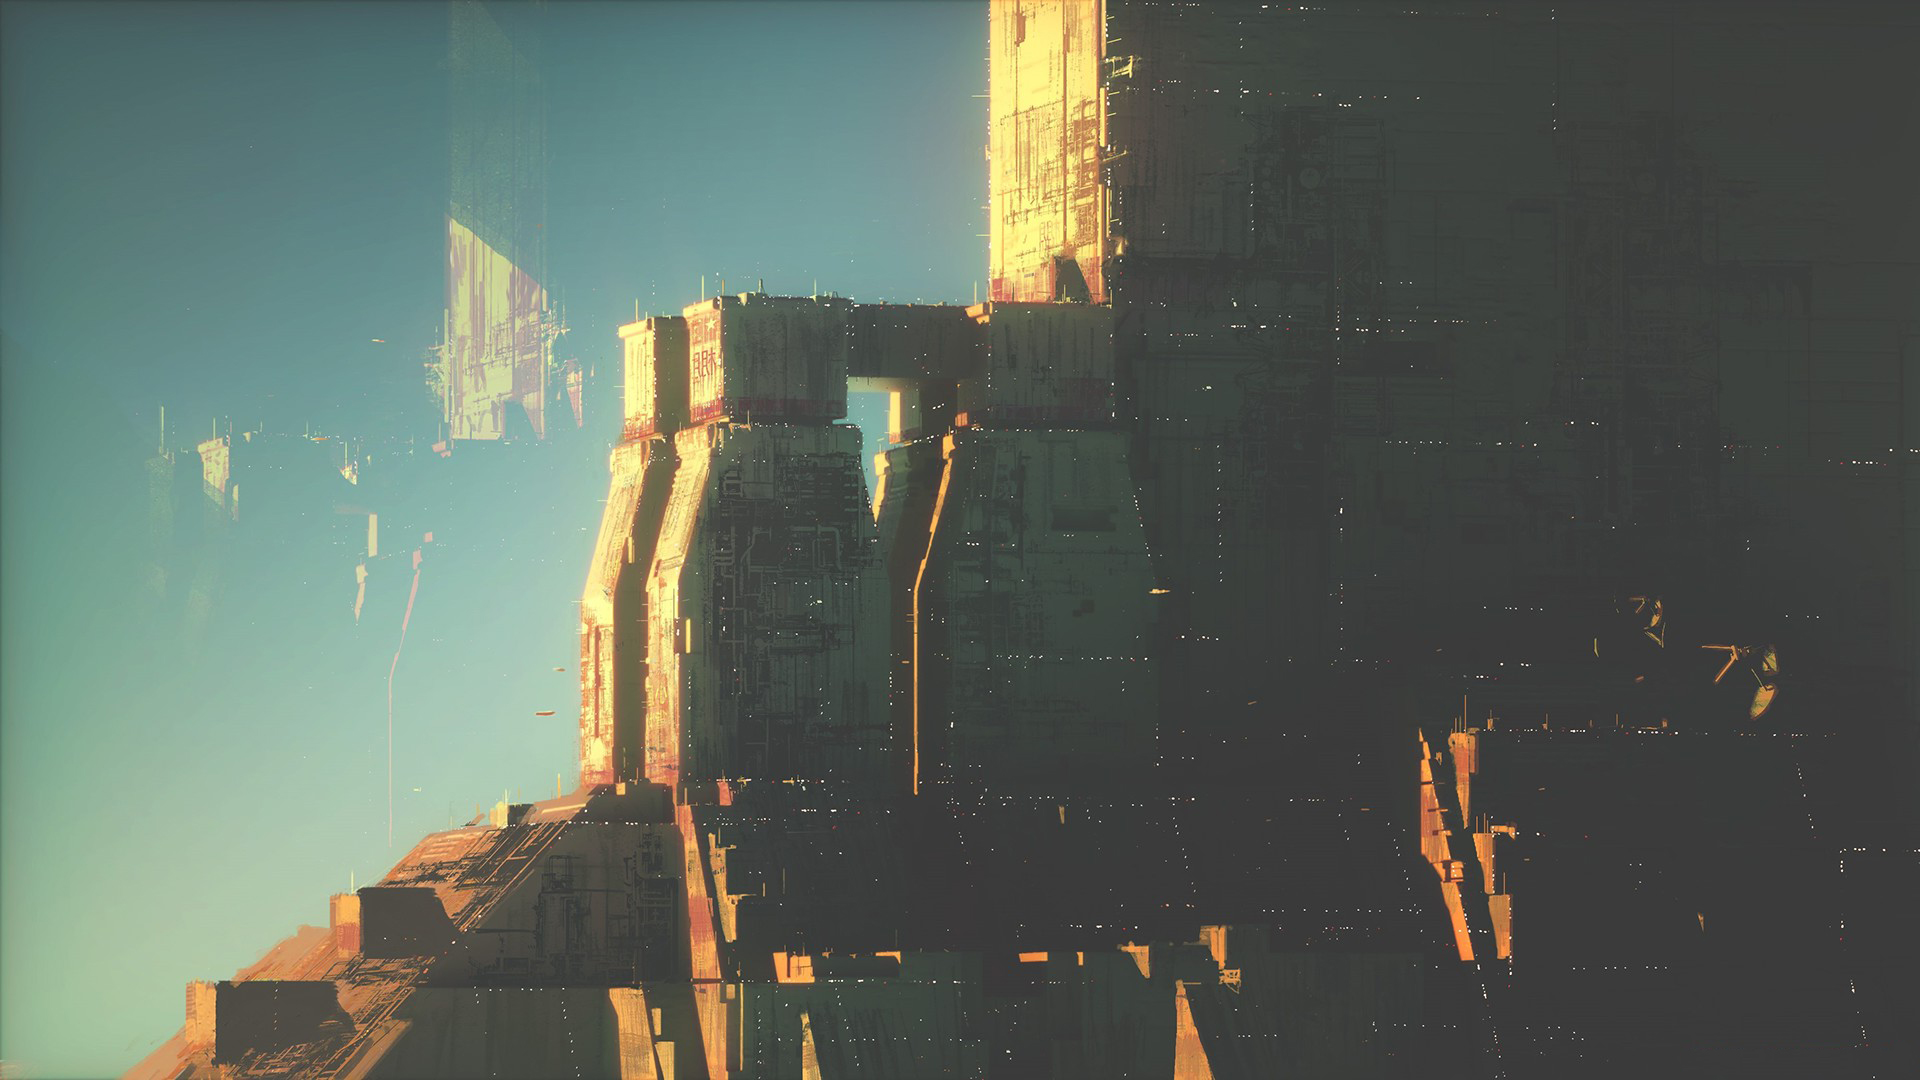 General 1920x1080 science fiction space futuristic abstract Star Wars city